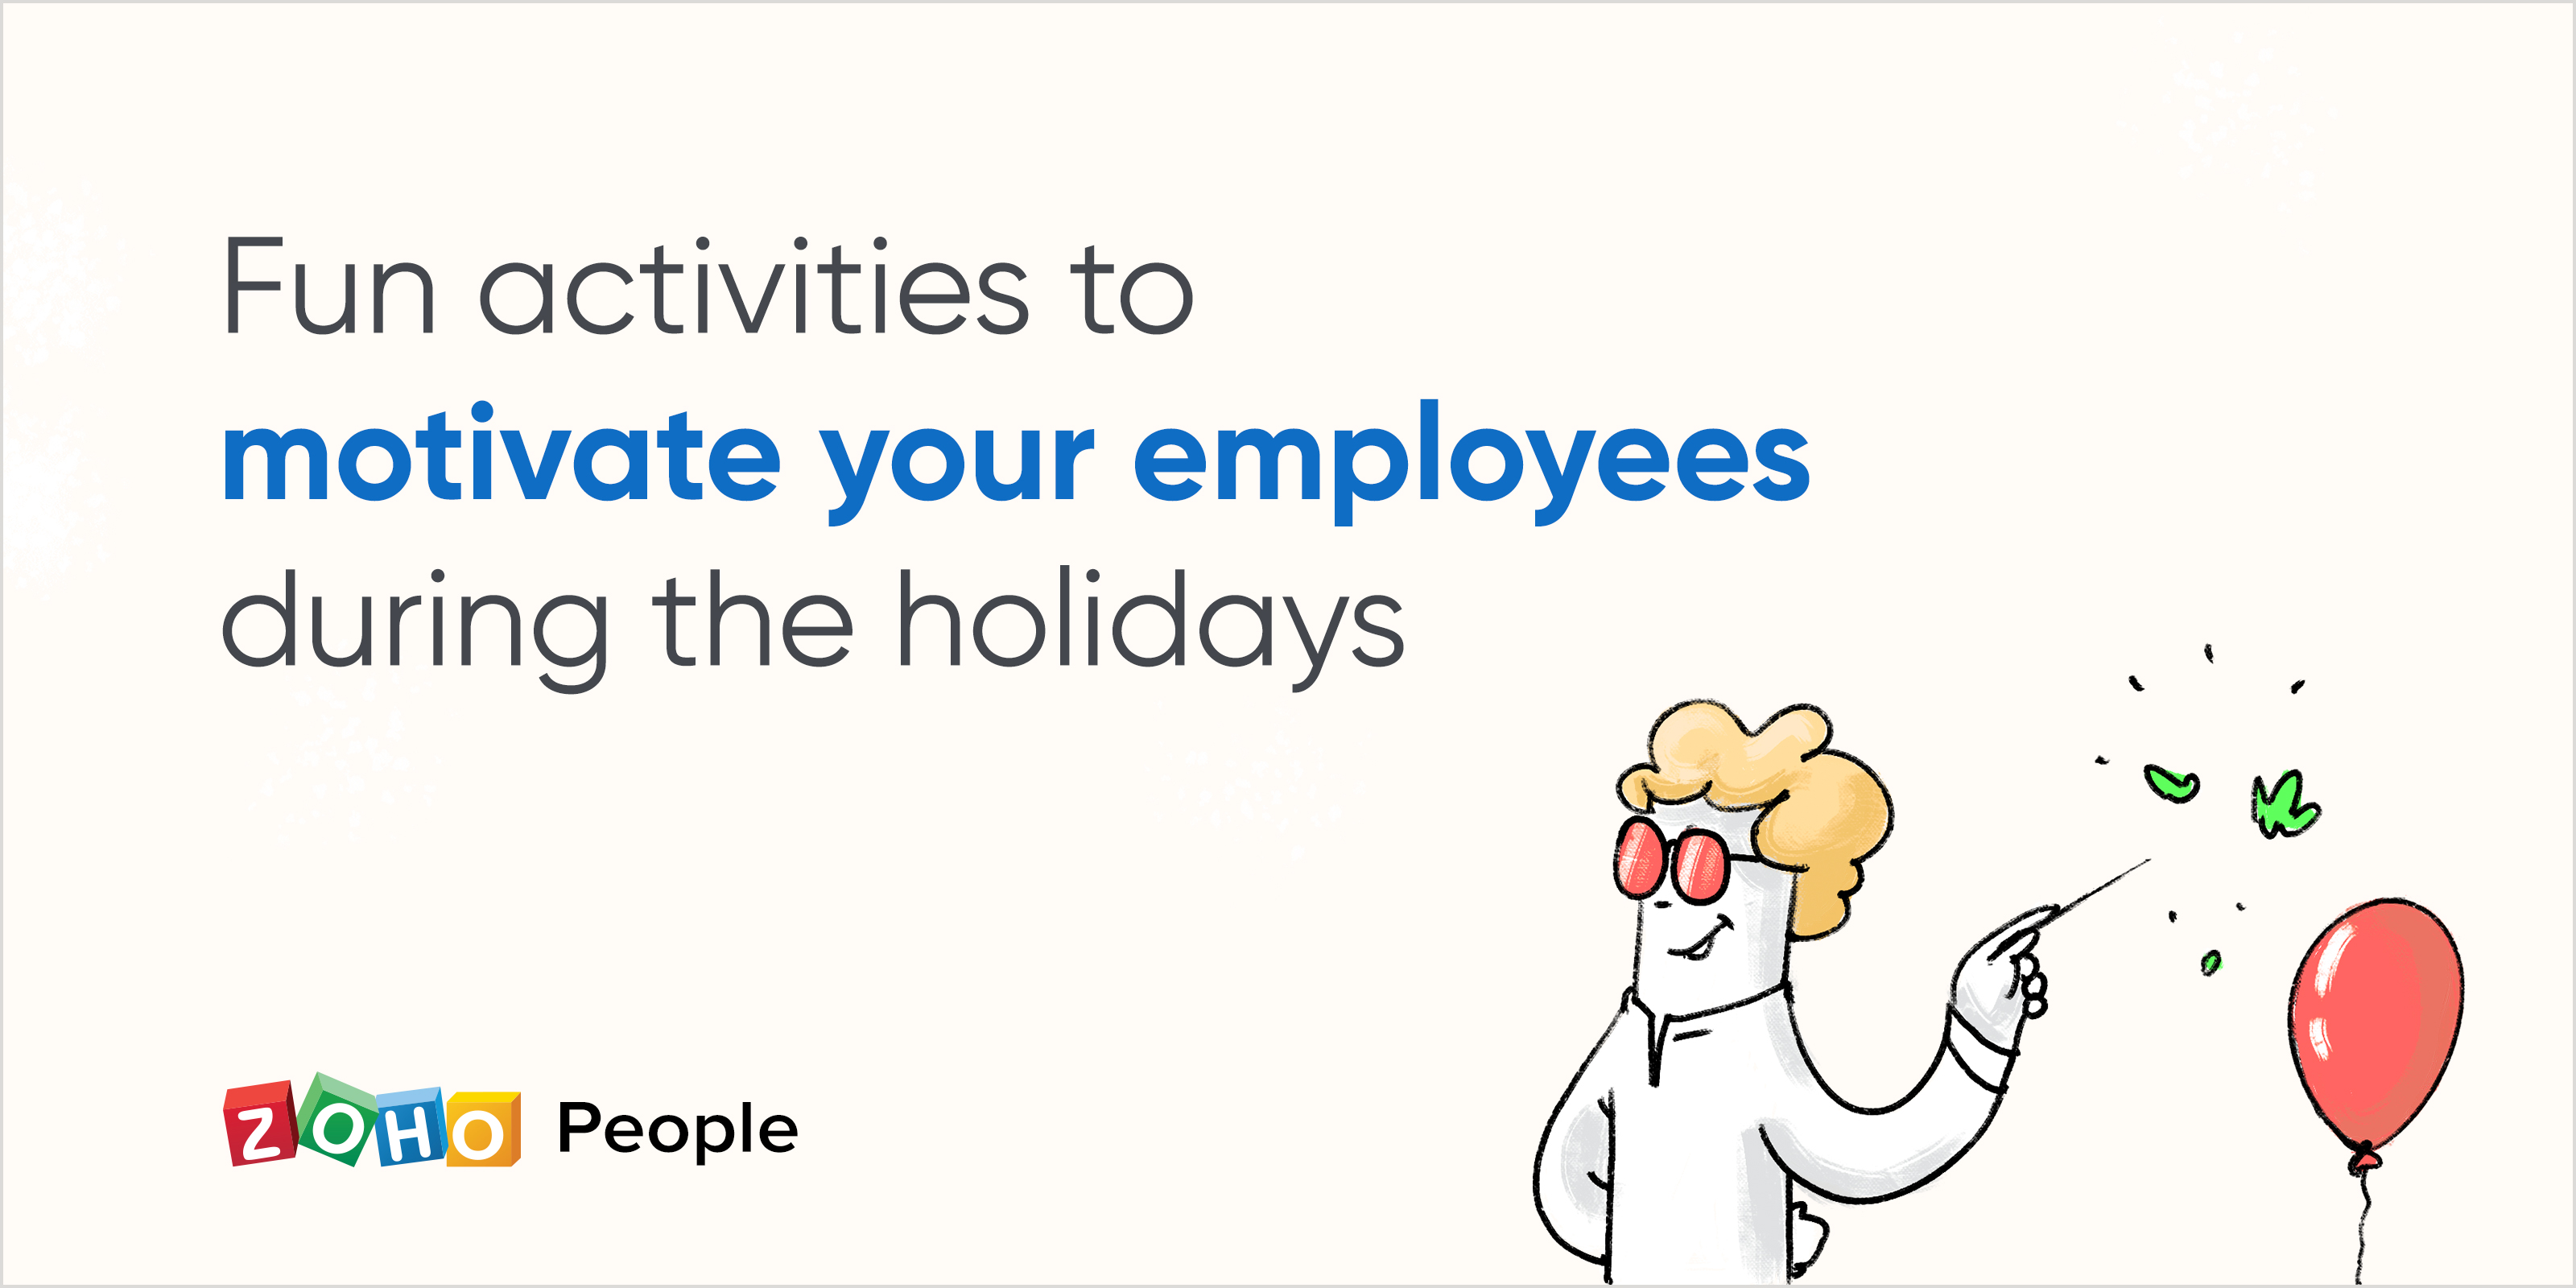 10 fun activities to motivate your employees during the holidays